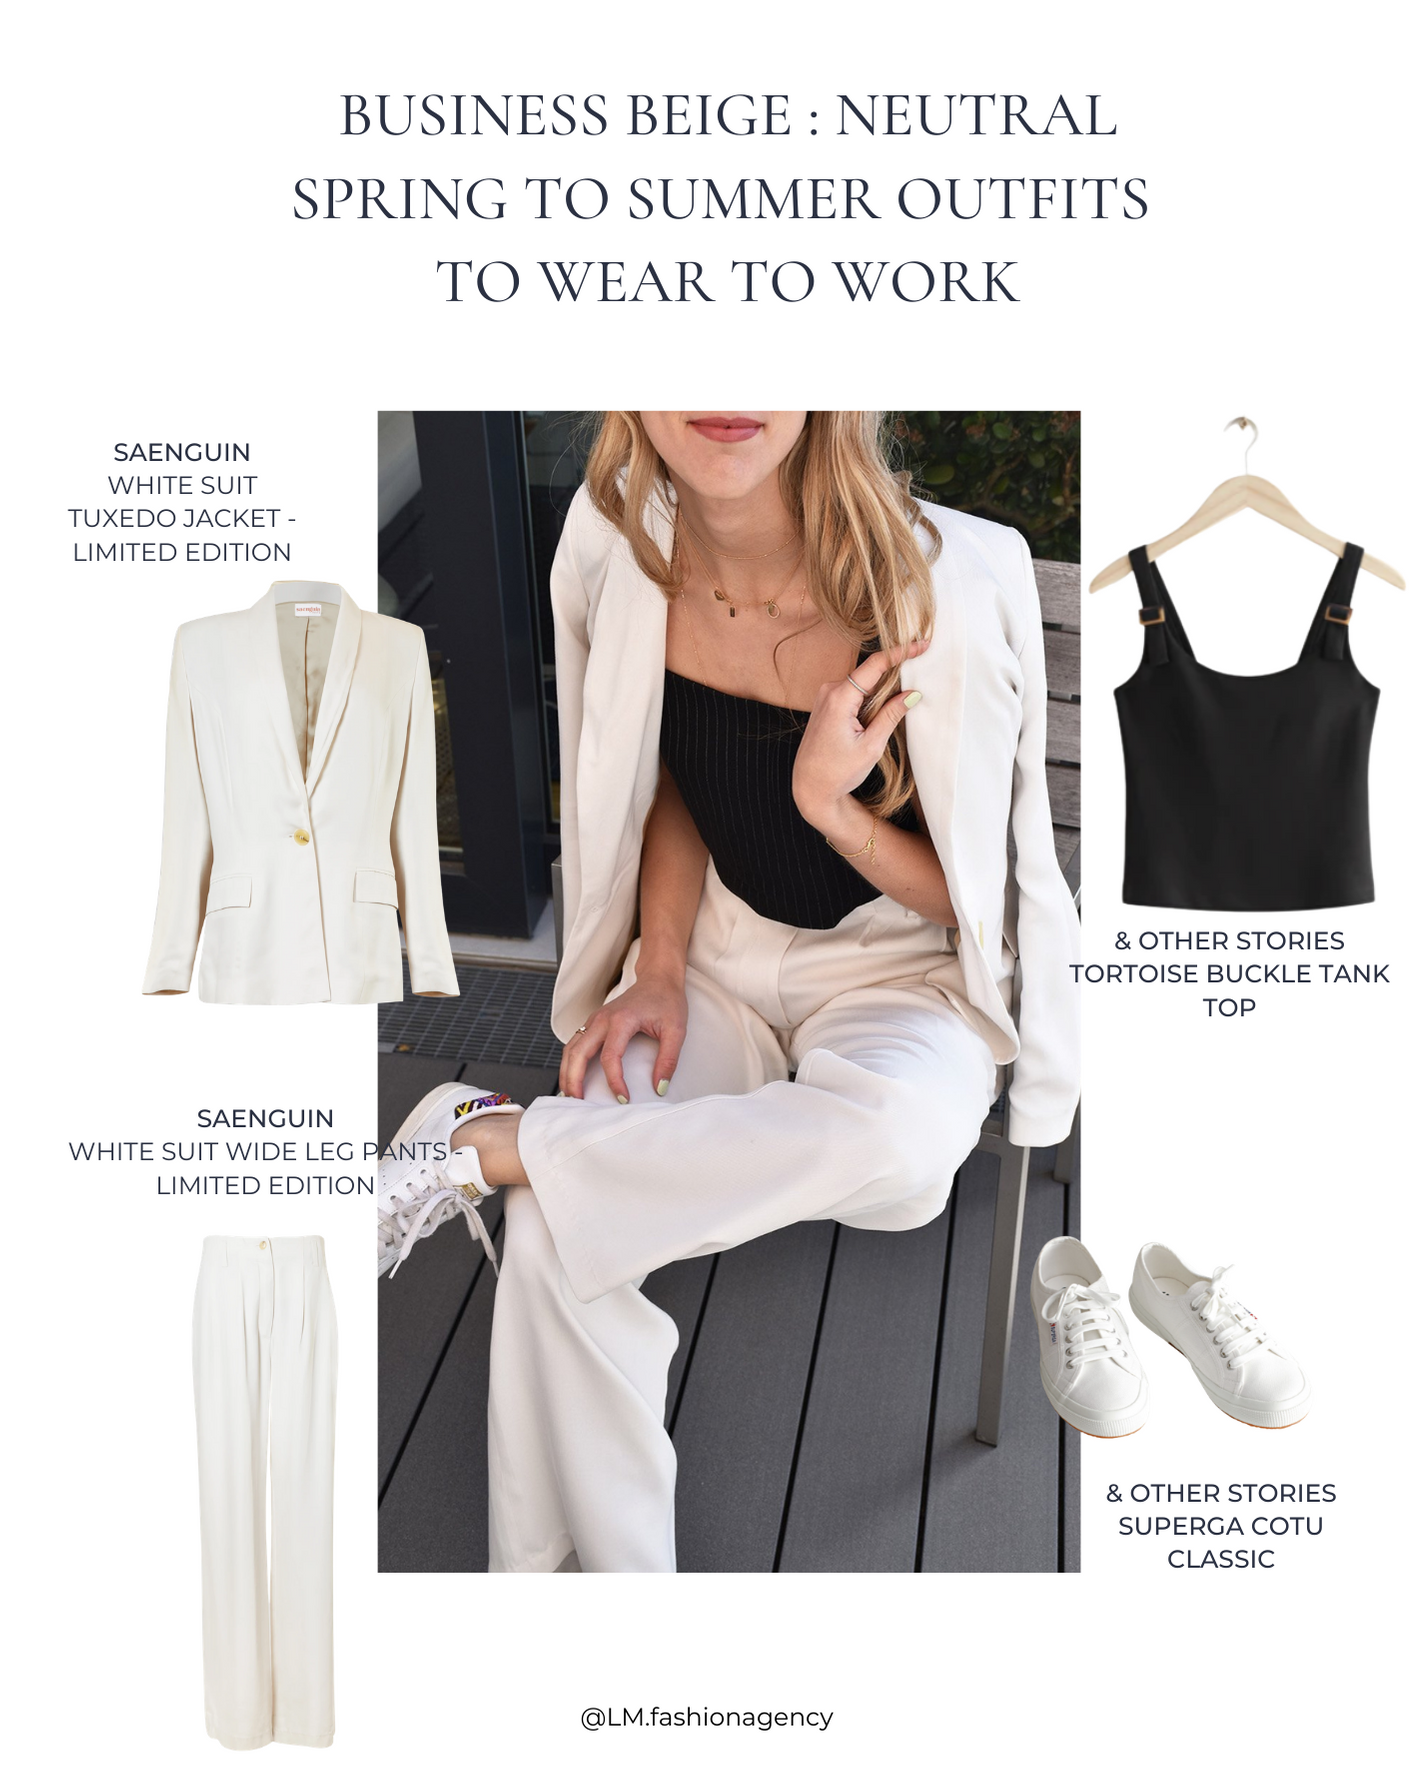 Business beige : neutral spring to summer outfits to wear to work